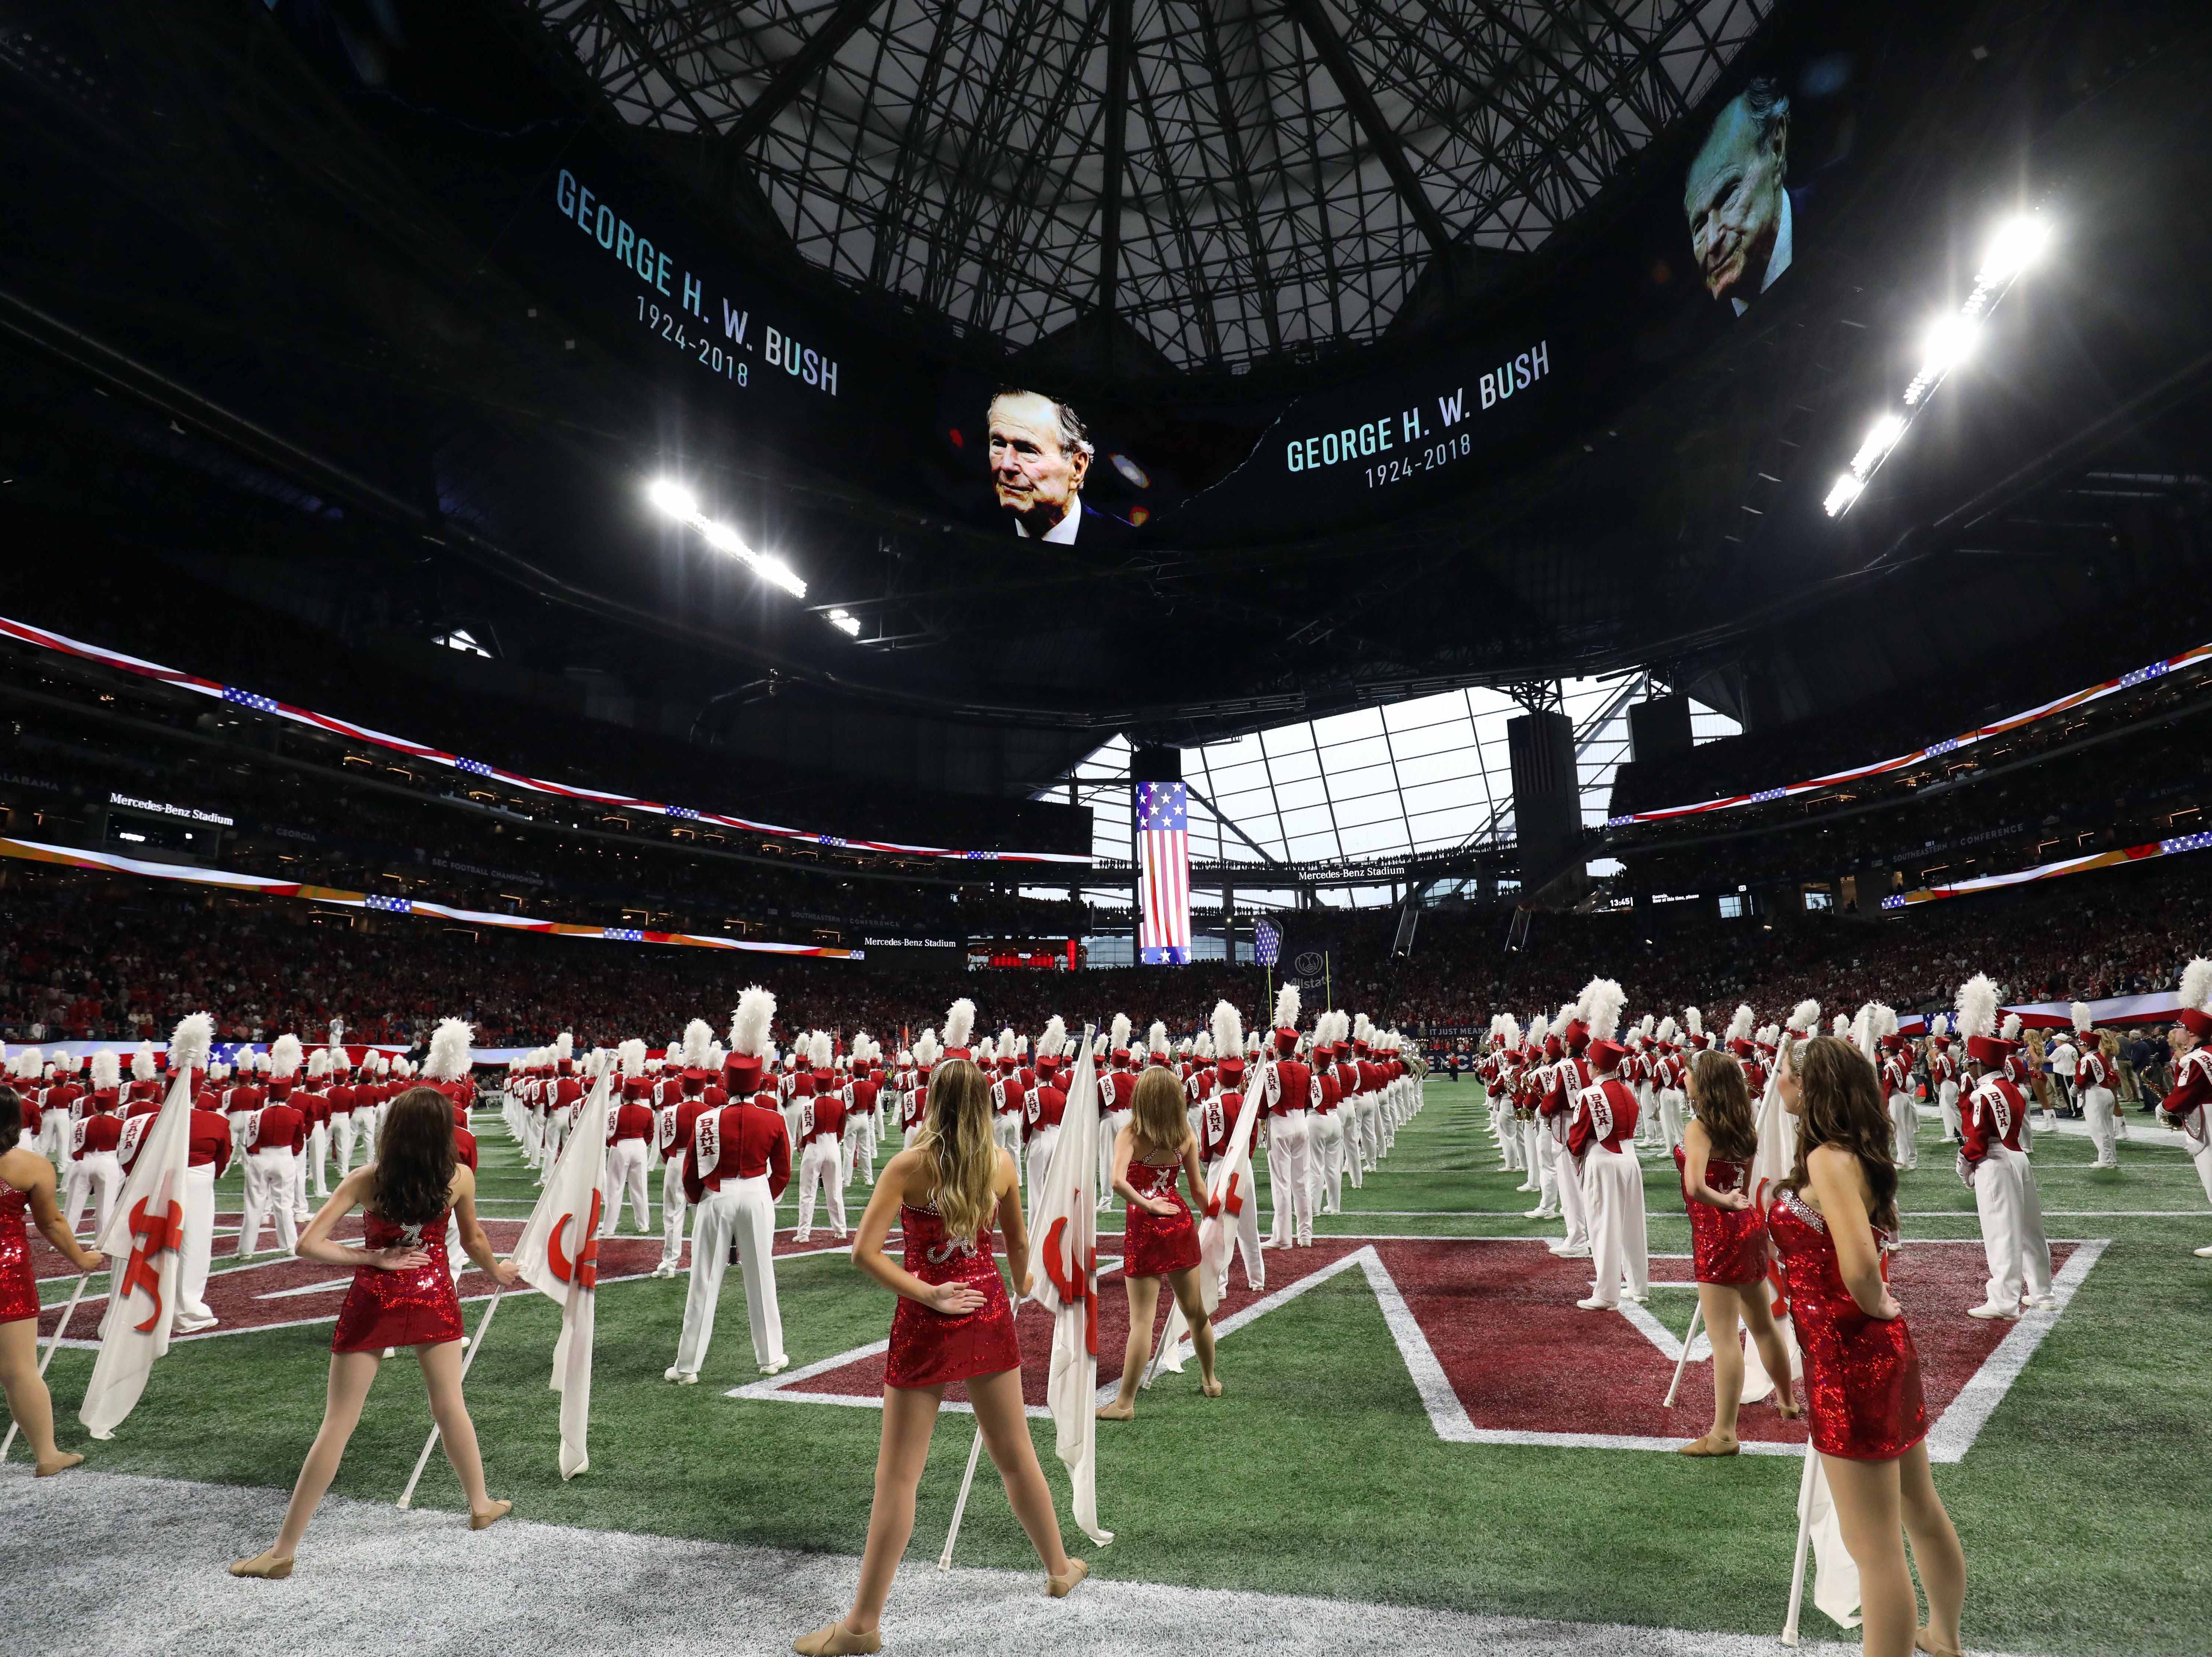 President George H. W. Bush is honored prior to the SEC championship game between the Alabama Crimson Tide and the Georgia Bulldogs at Mercedes-Benz Stadium.